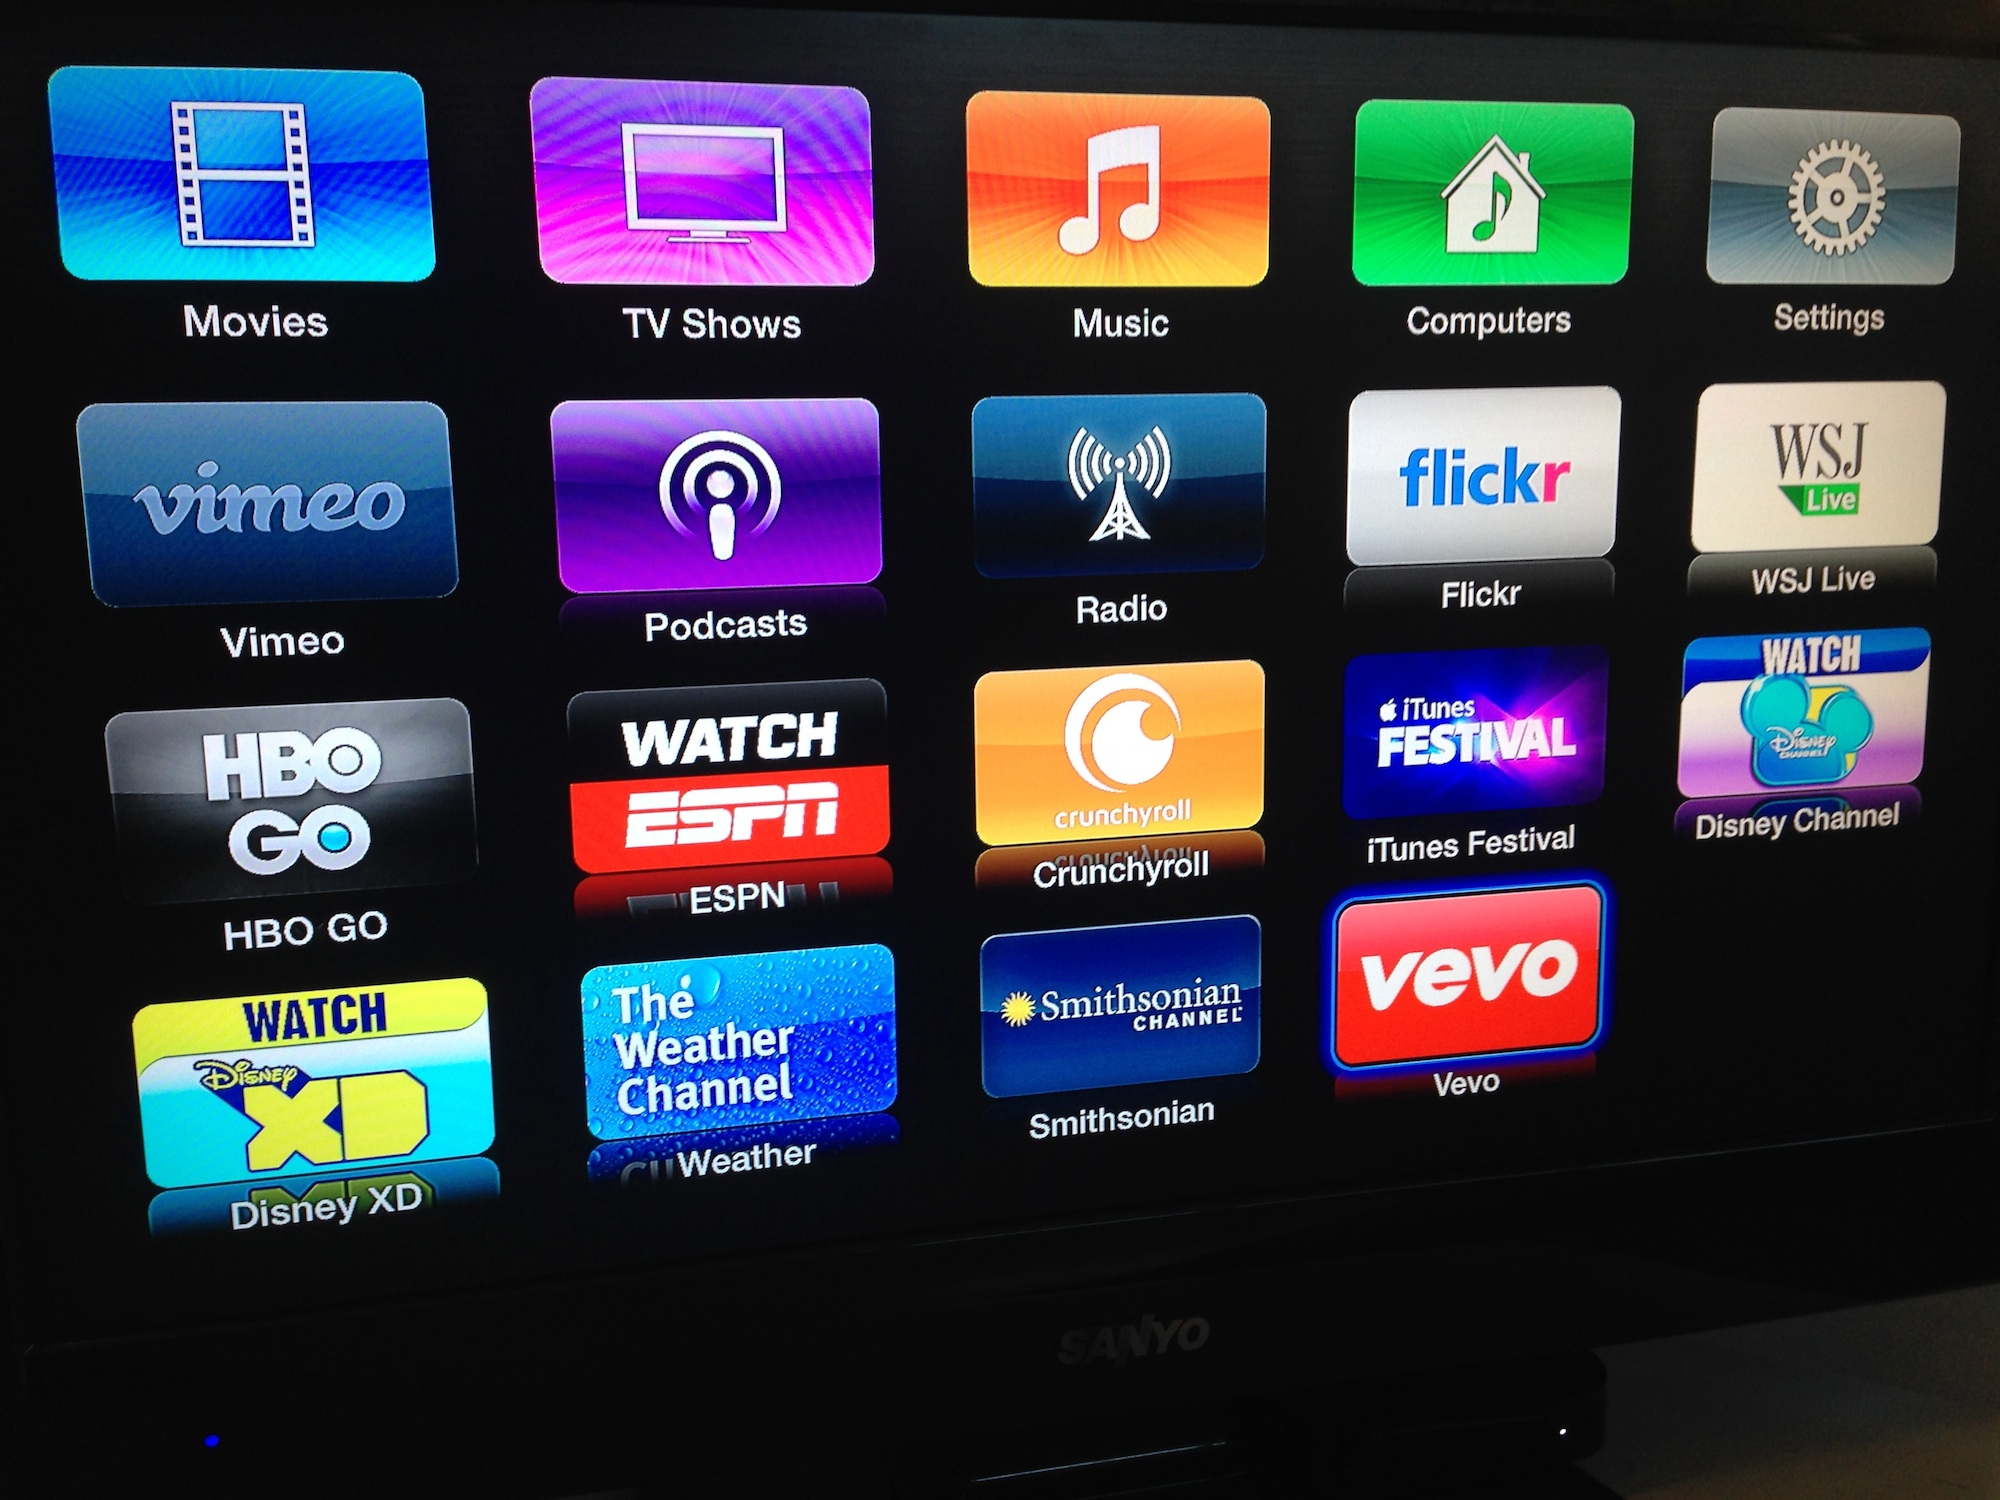 VEVO on Apple TV